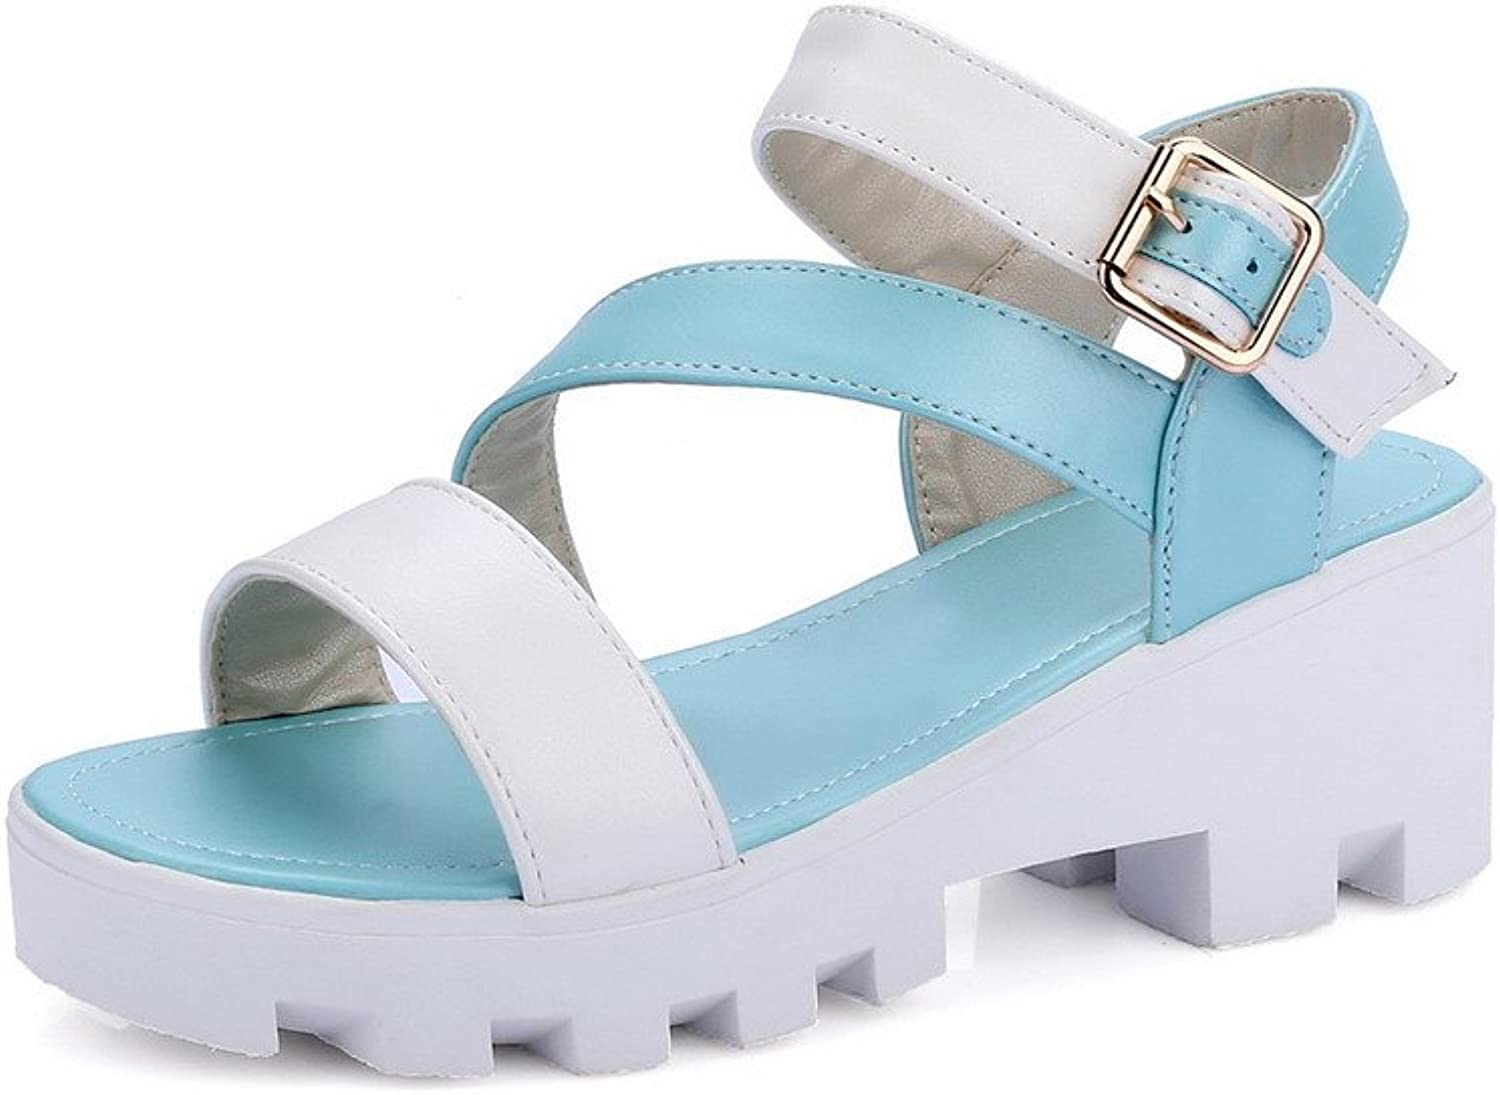 AmoonyFashion Women's Assorted color PU Kitten-Heels Open Toe Buckle Platforms-Sandals